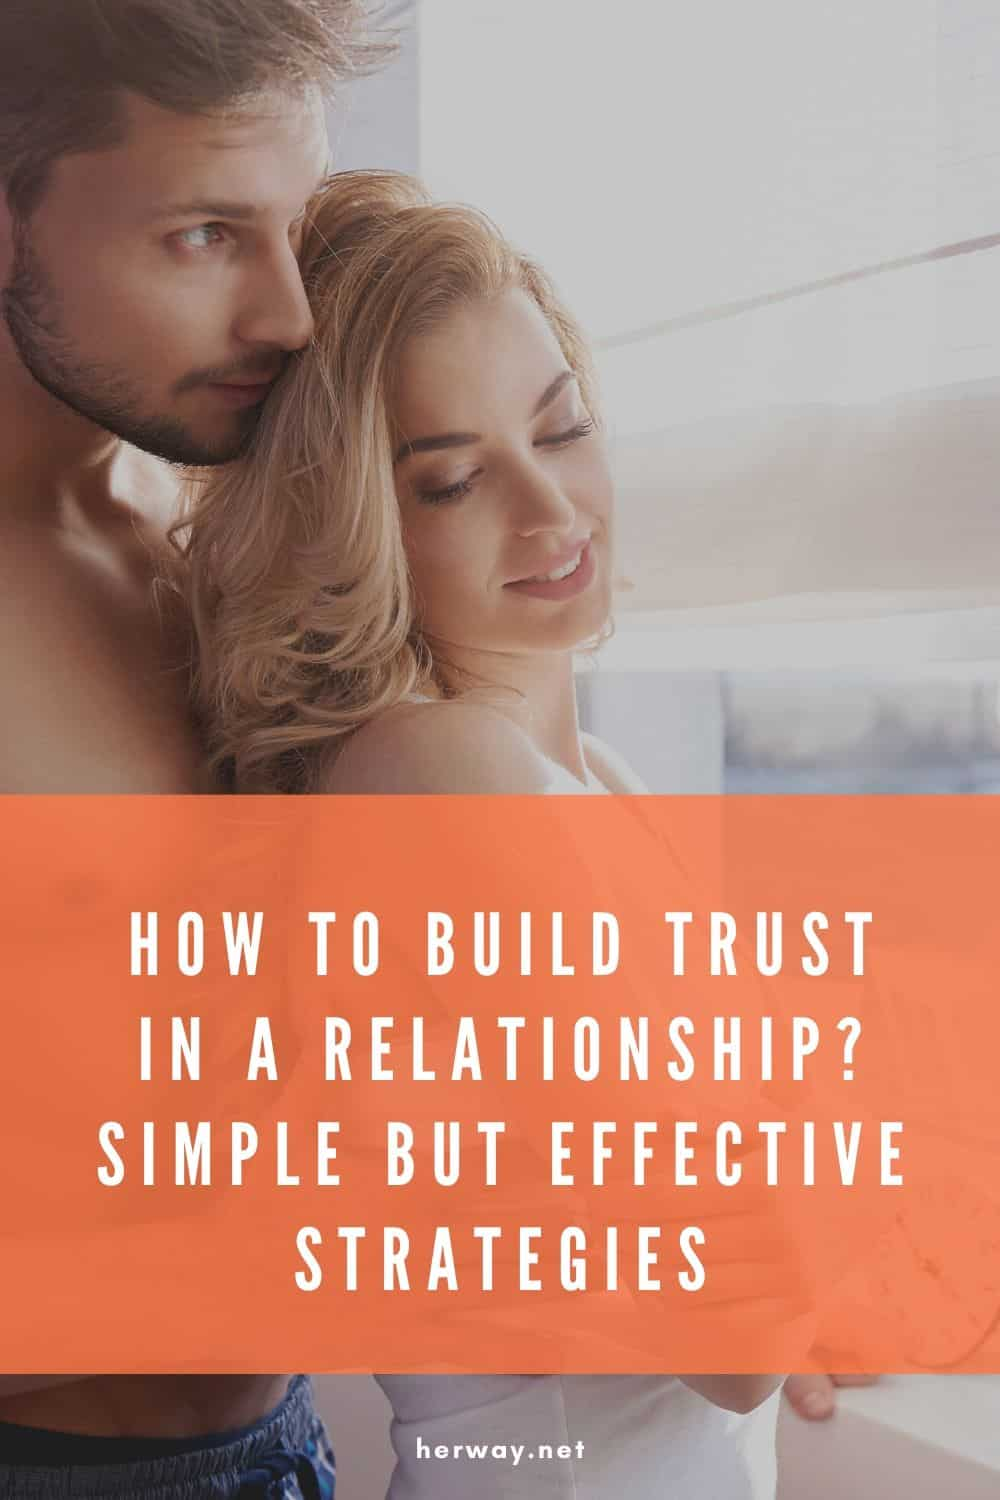 How To Build Trust In A Relationship? Simple But Effective Strategies